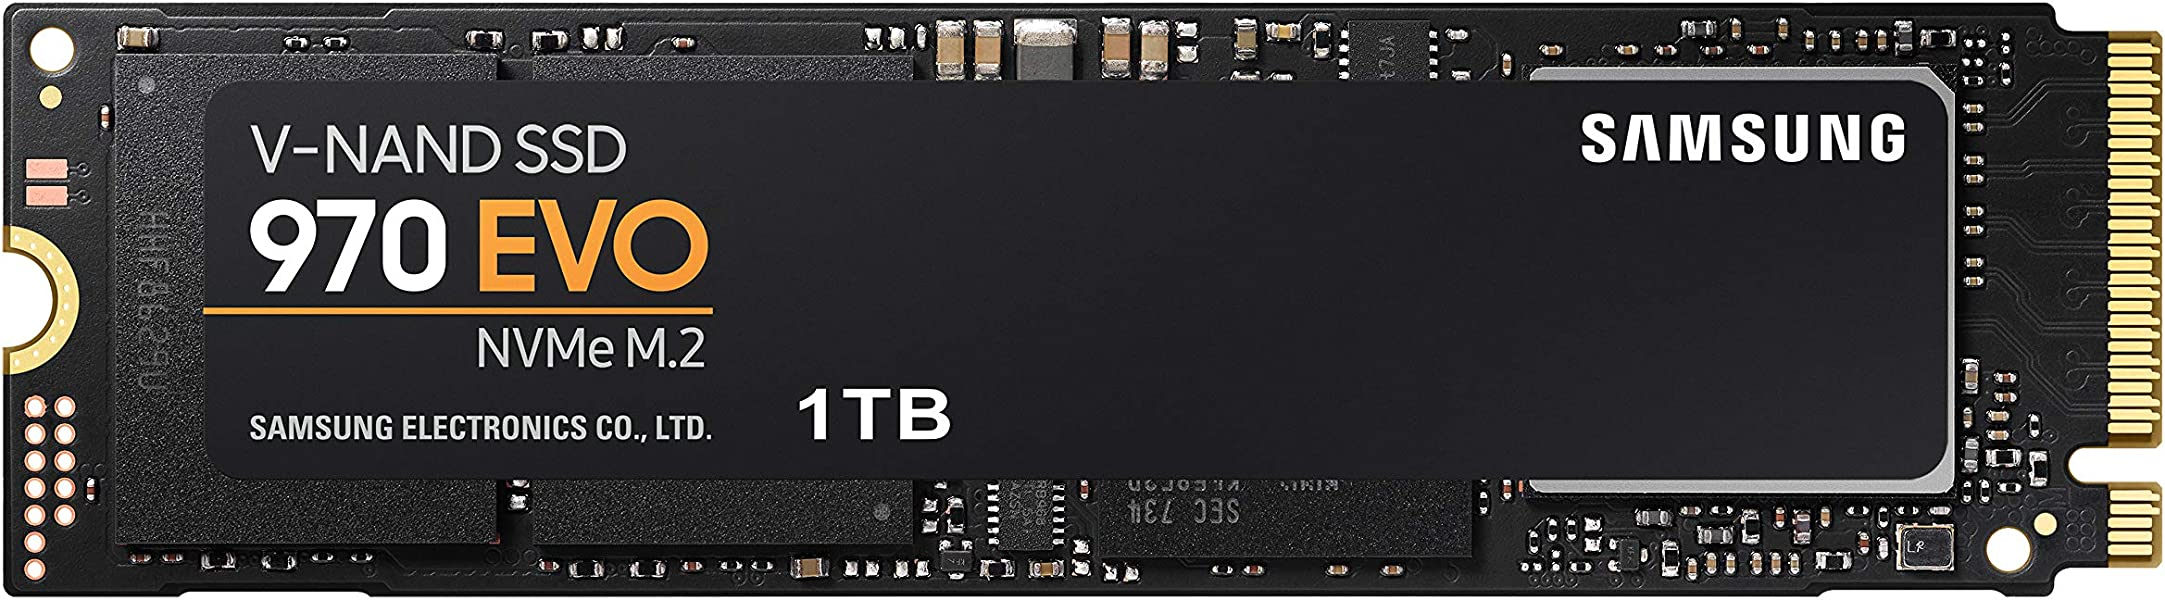 Samsung 970 EVO 1TB SSD MZ V7E1T0BW NVMe M 2 V NAND Internal Solid State Drive